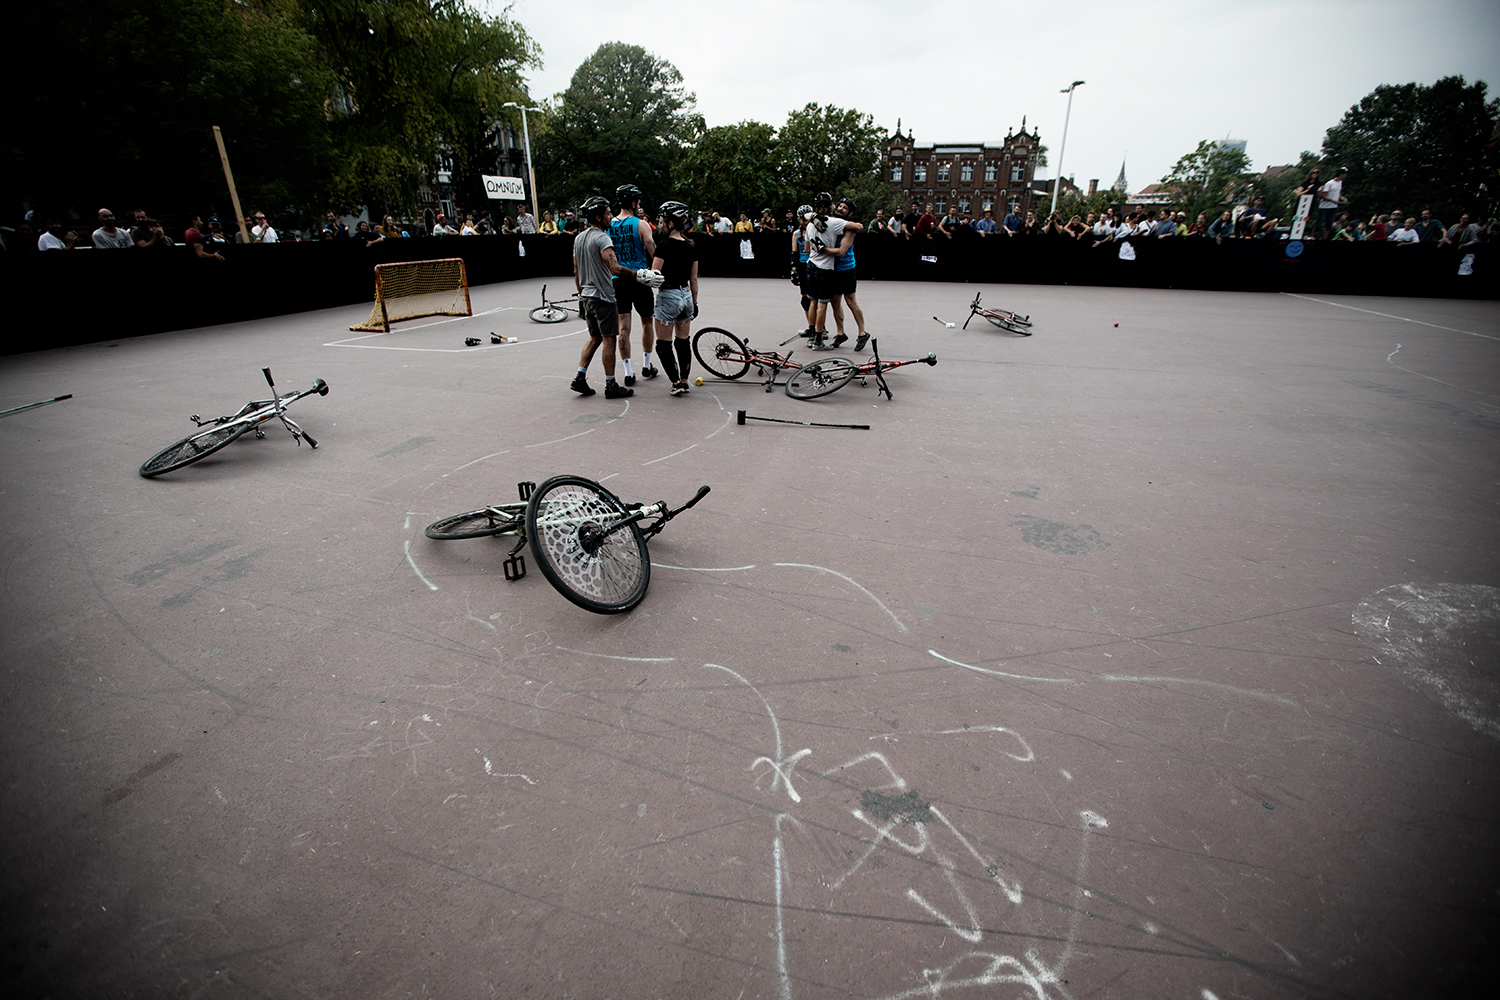 Brussels Bike Polo - Le Grand Royal 10 - 2021 by Laurent Orseau #1